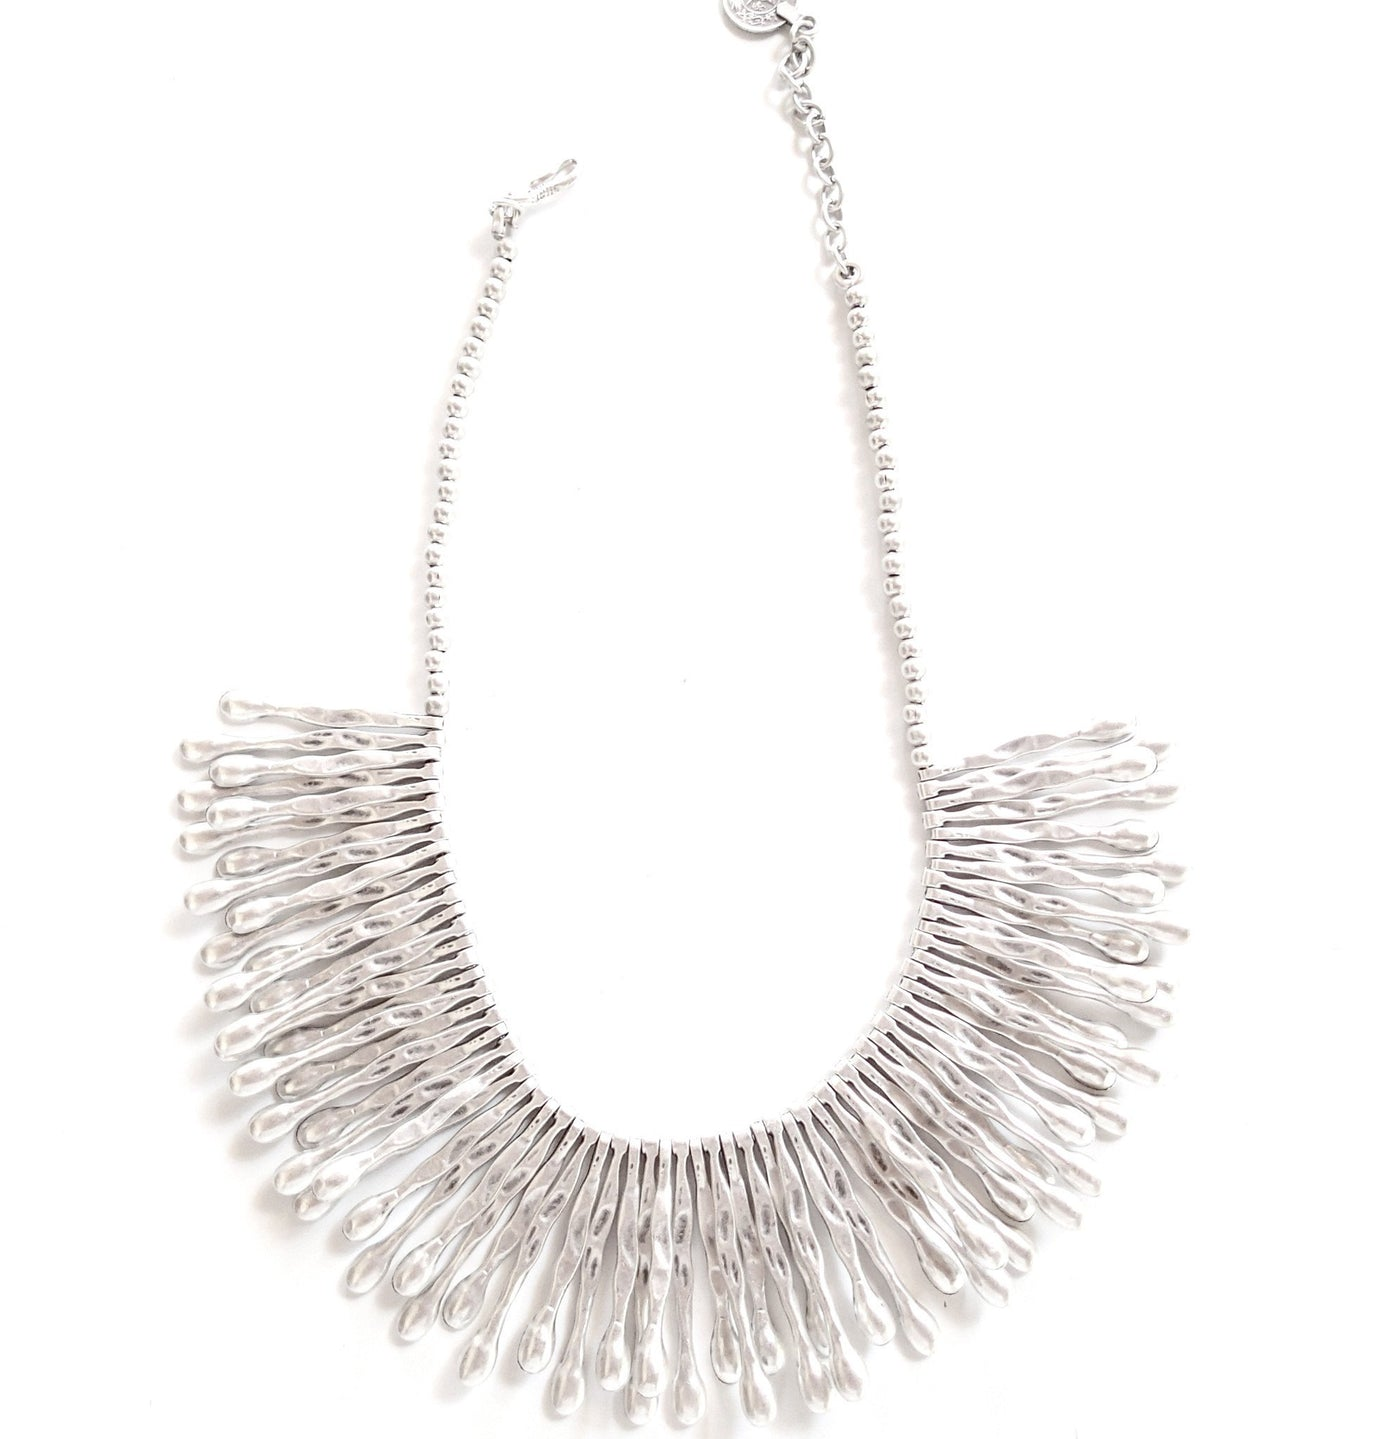 Spoony necklace - Celeste Twikler